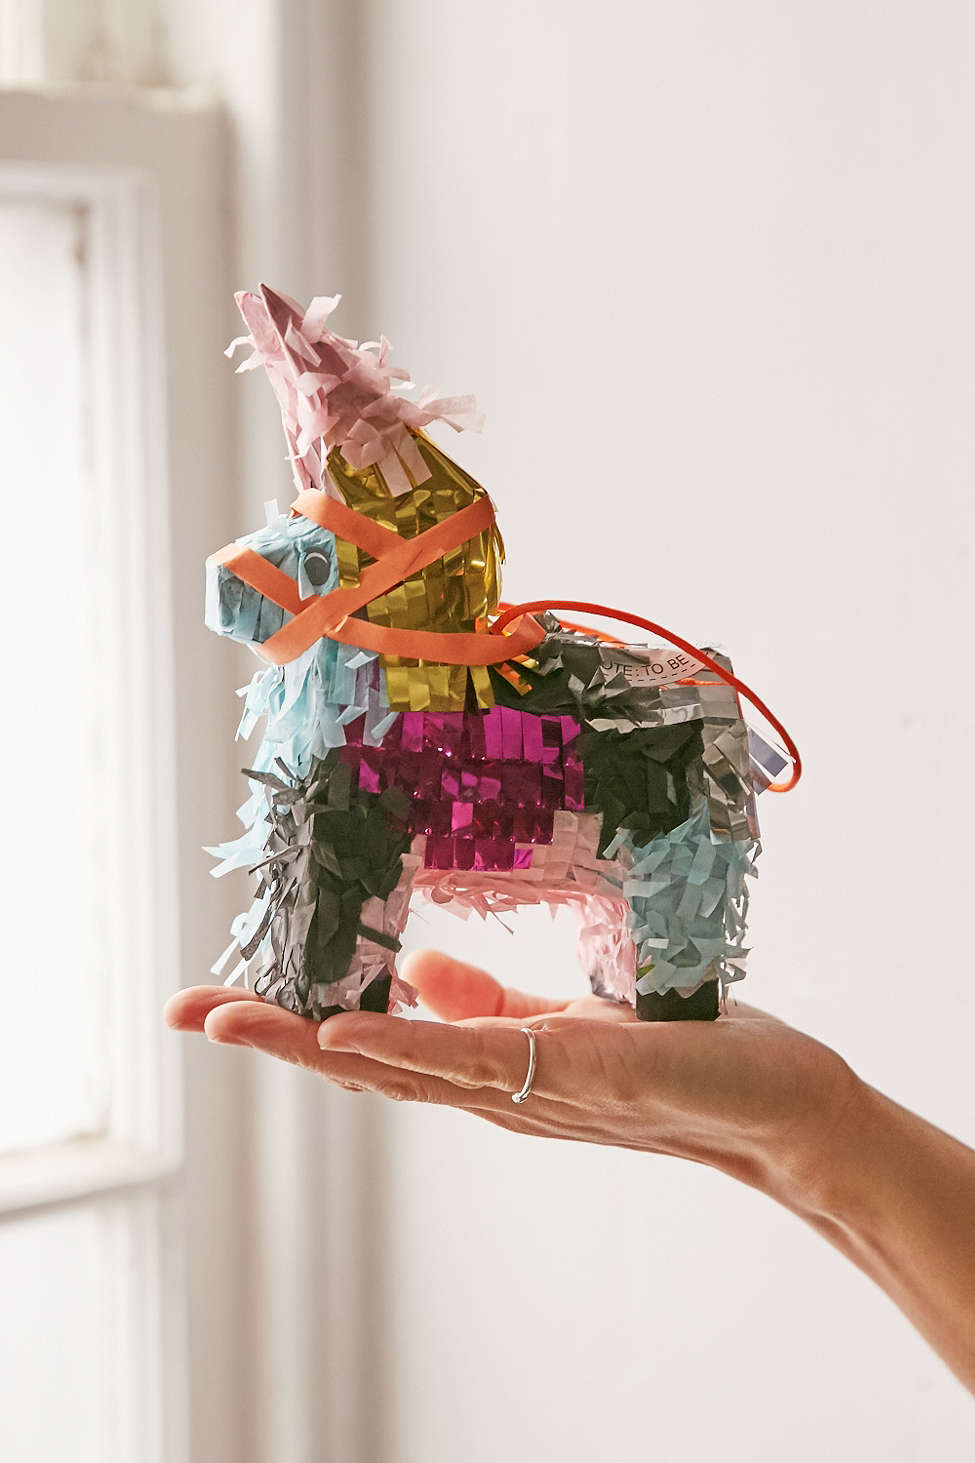 Donkey Piñata | Any one of these finds from Urban Outfitters could make your next get summer together the party of the century.